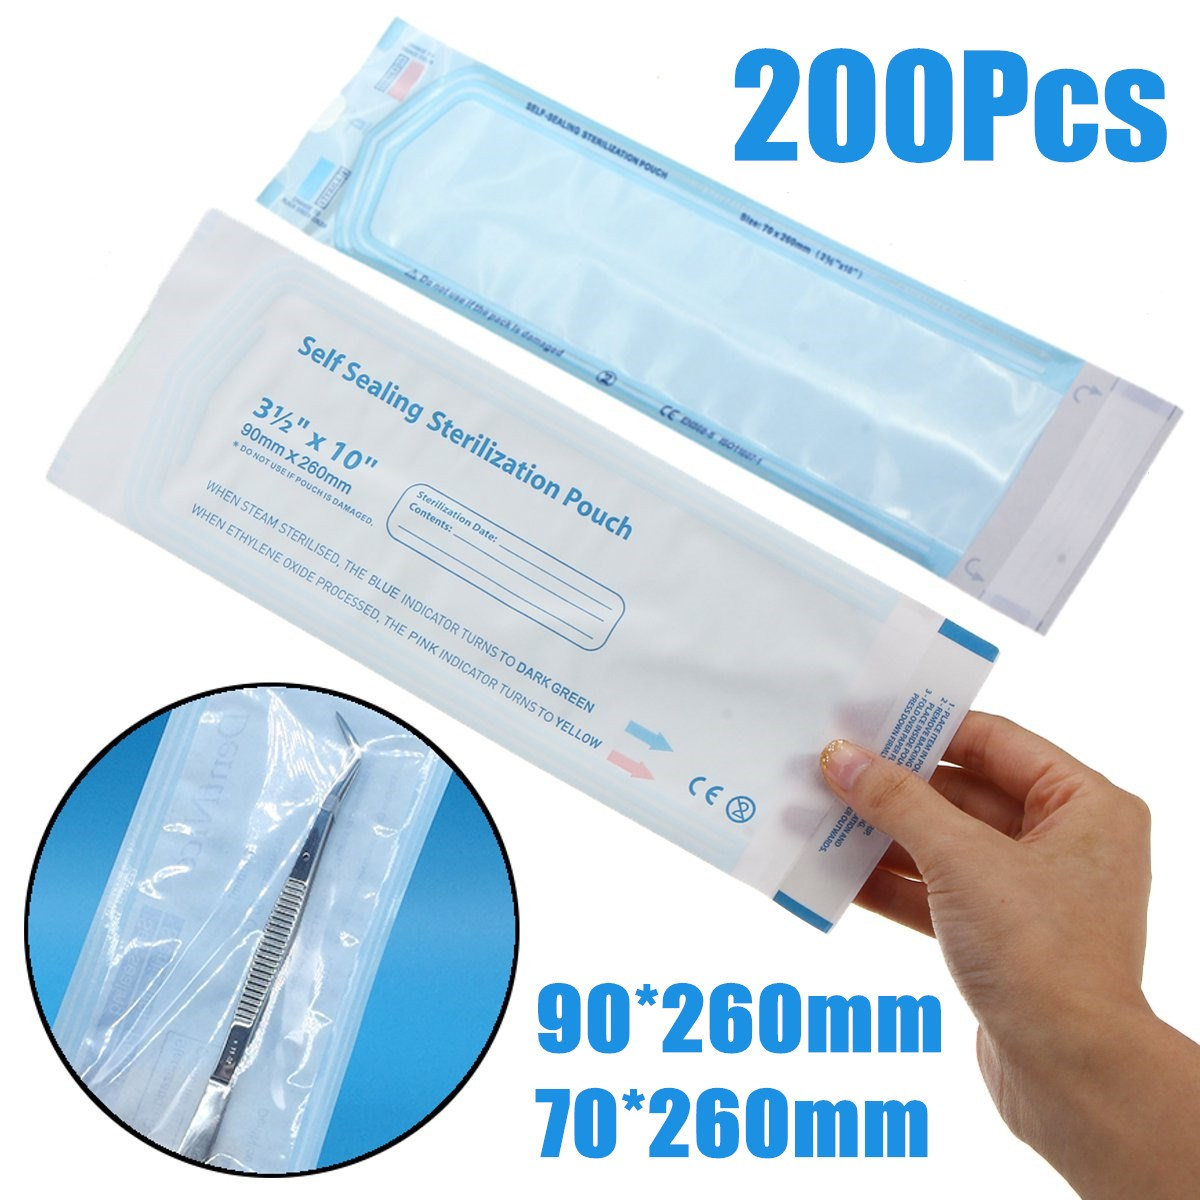 цена на 200PCS/Pack Self Sealing Sterilization Pouch Medical Grade Paper Disposable Dental Tattoo Tool Storage Bag 260*90/70*260mm